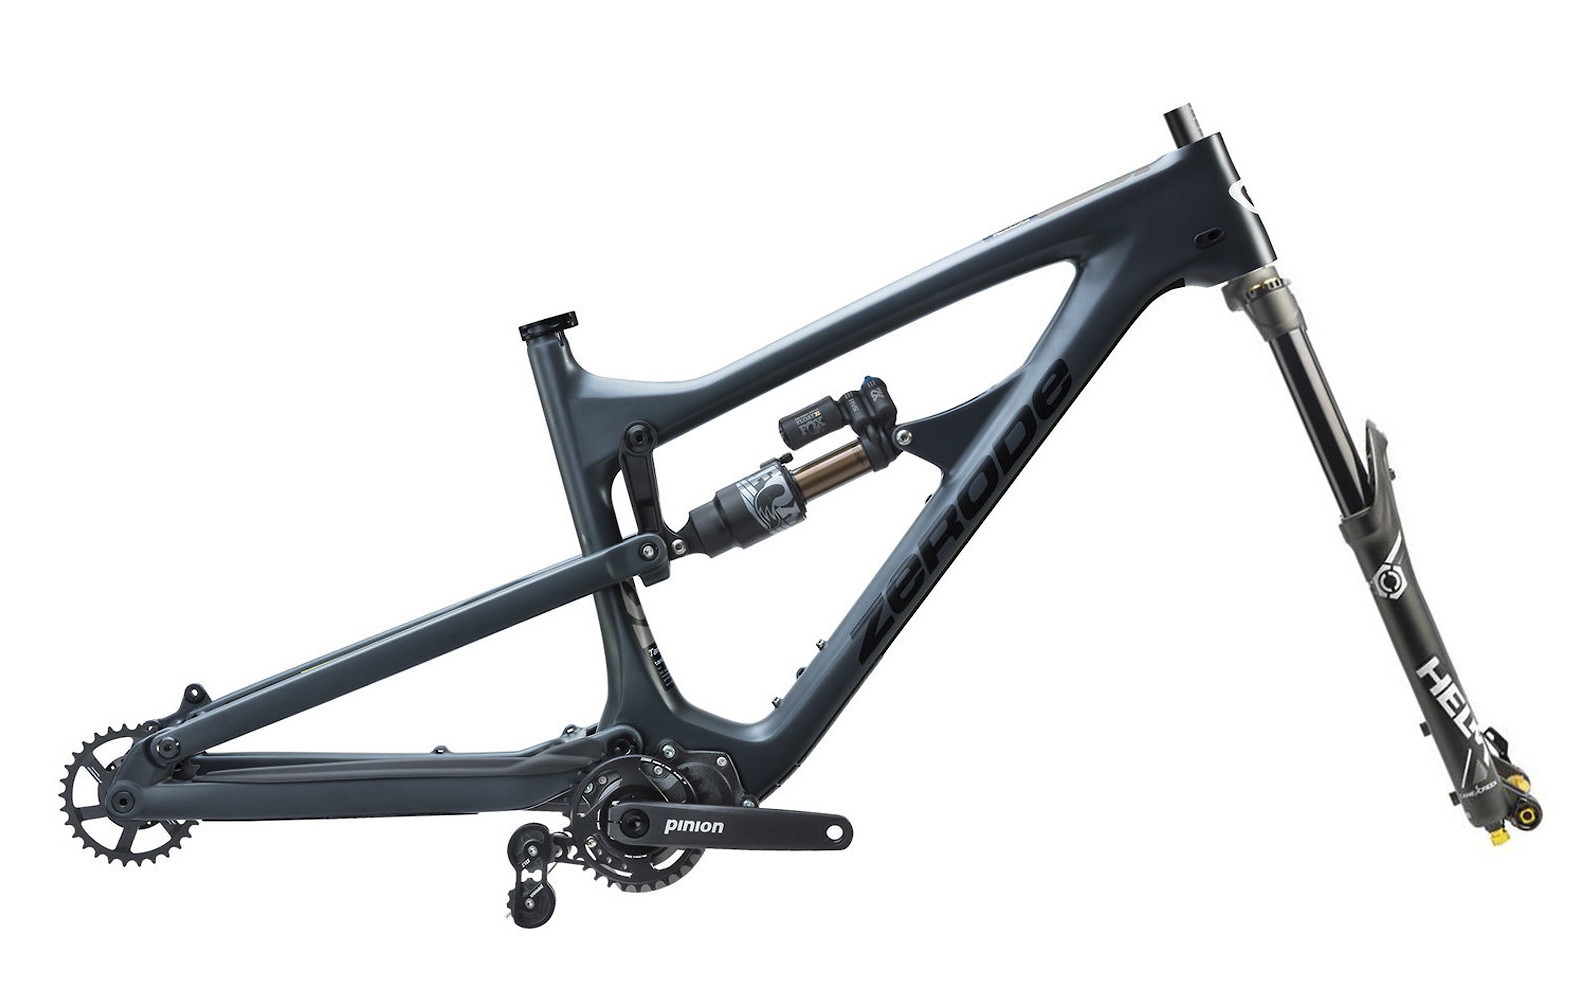 2019 Zerode Taniwha Trail Pioneer Frame